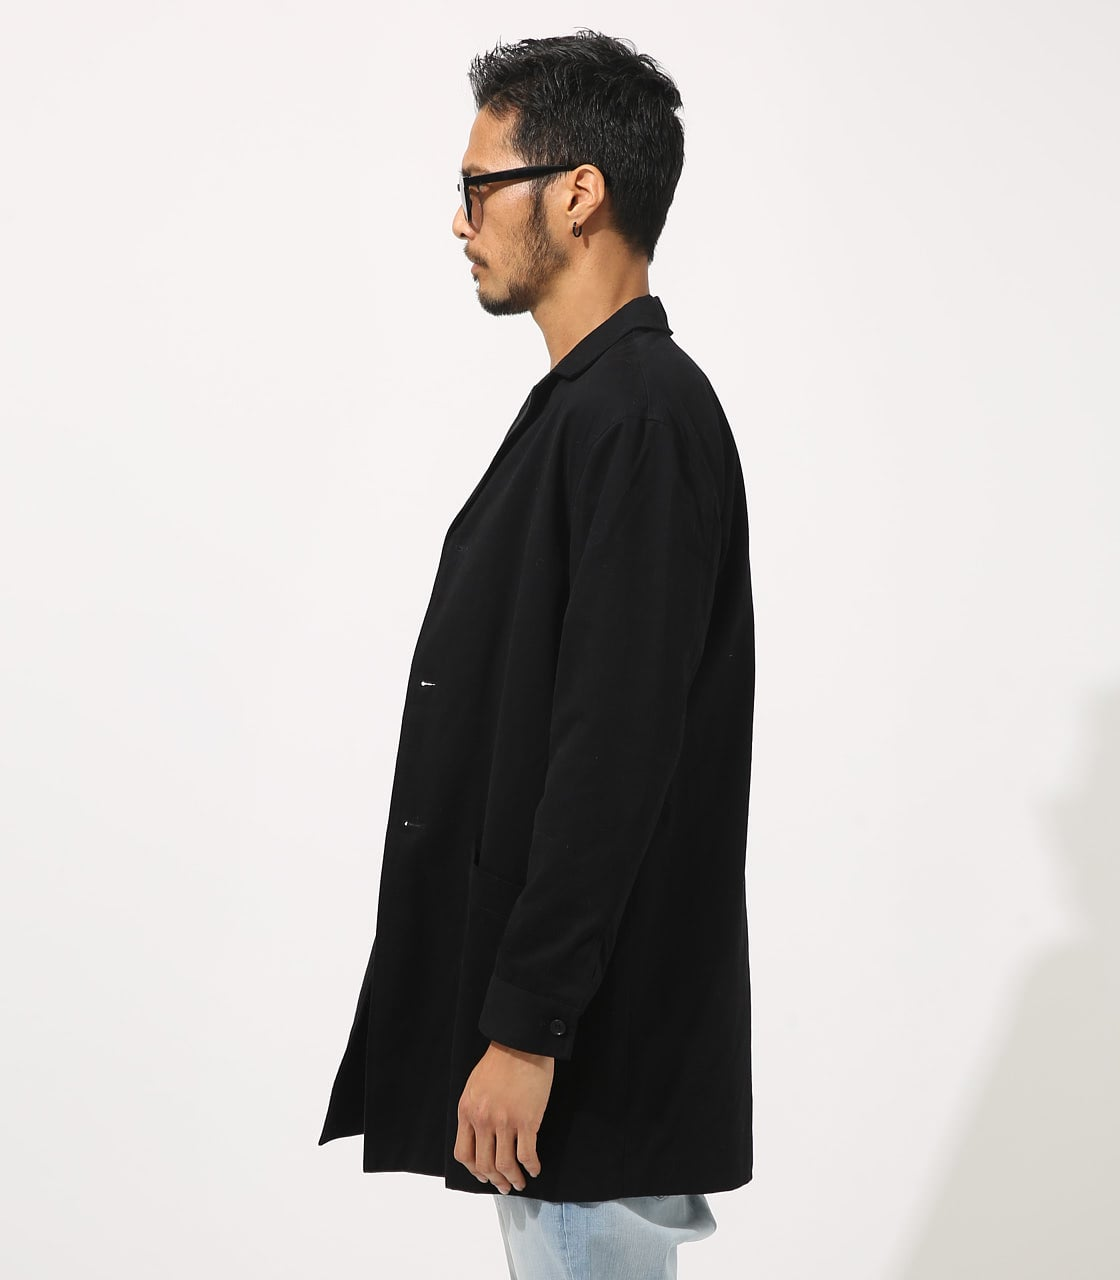 【AZUL BY MOUSSY】STANDARD SHOPCOAT 詳細画像 BLK 6